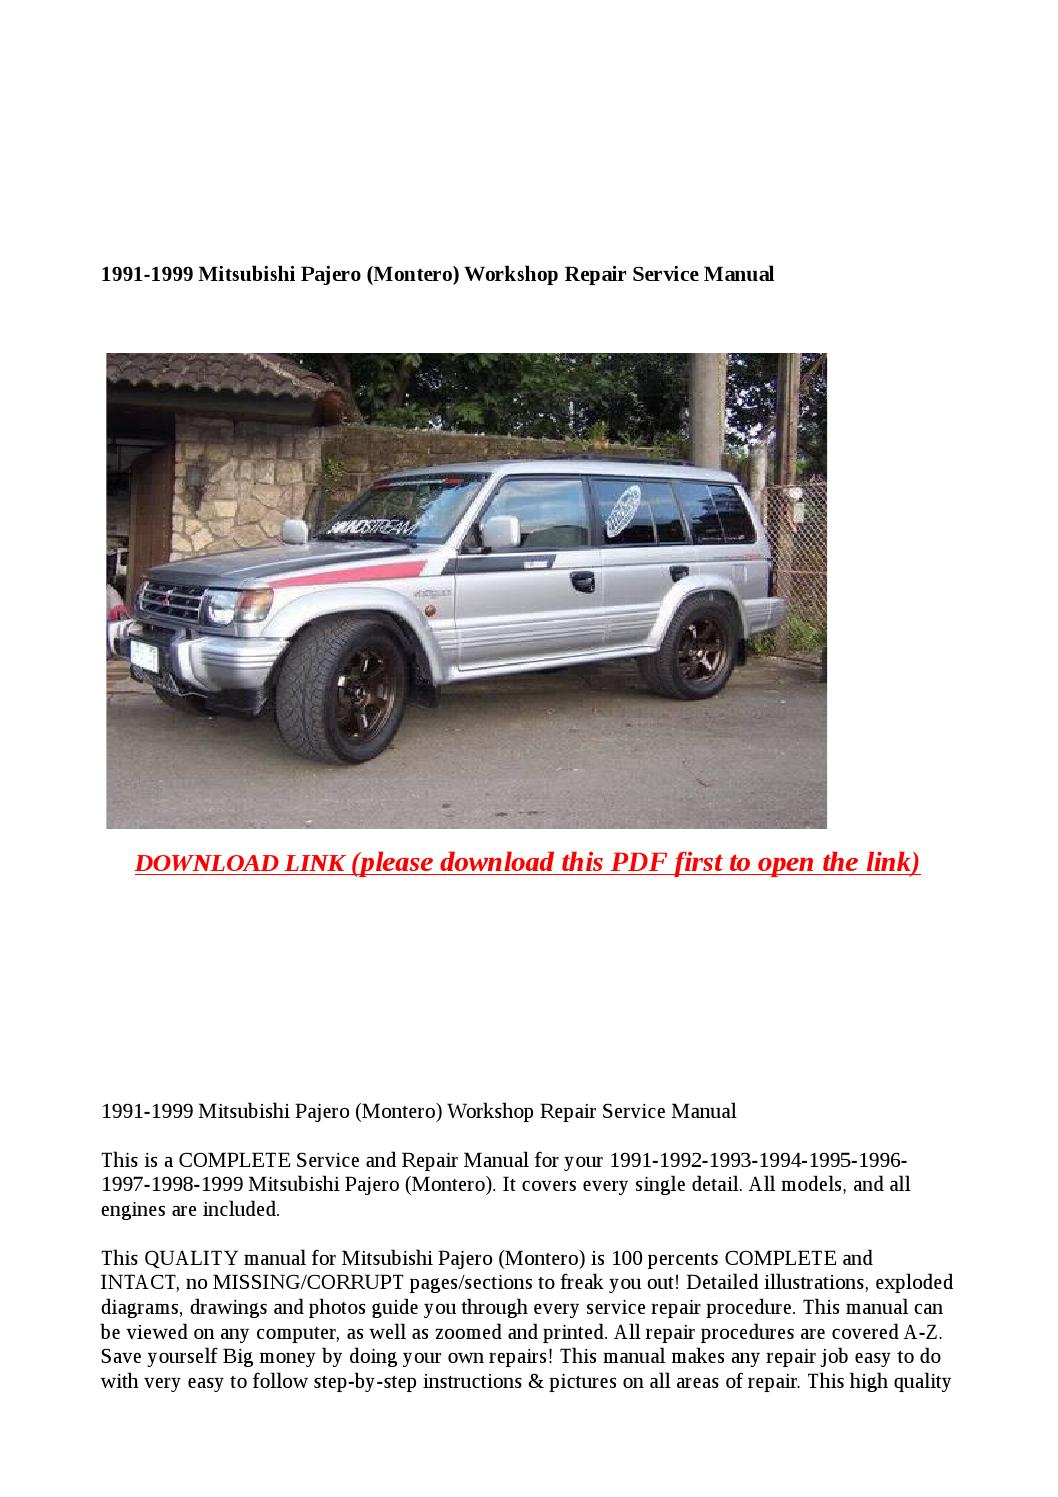 1991 1999 Mitsubishi Pajero  Montero  Workshop Repair Service Manual By Dale